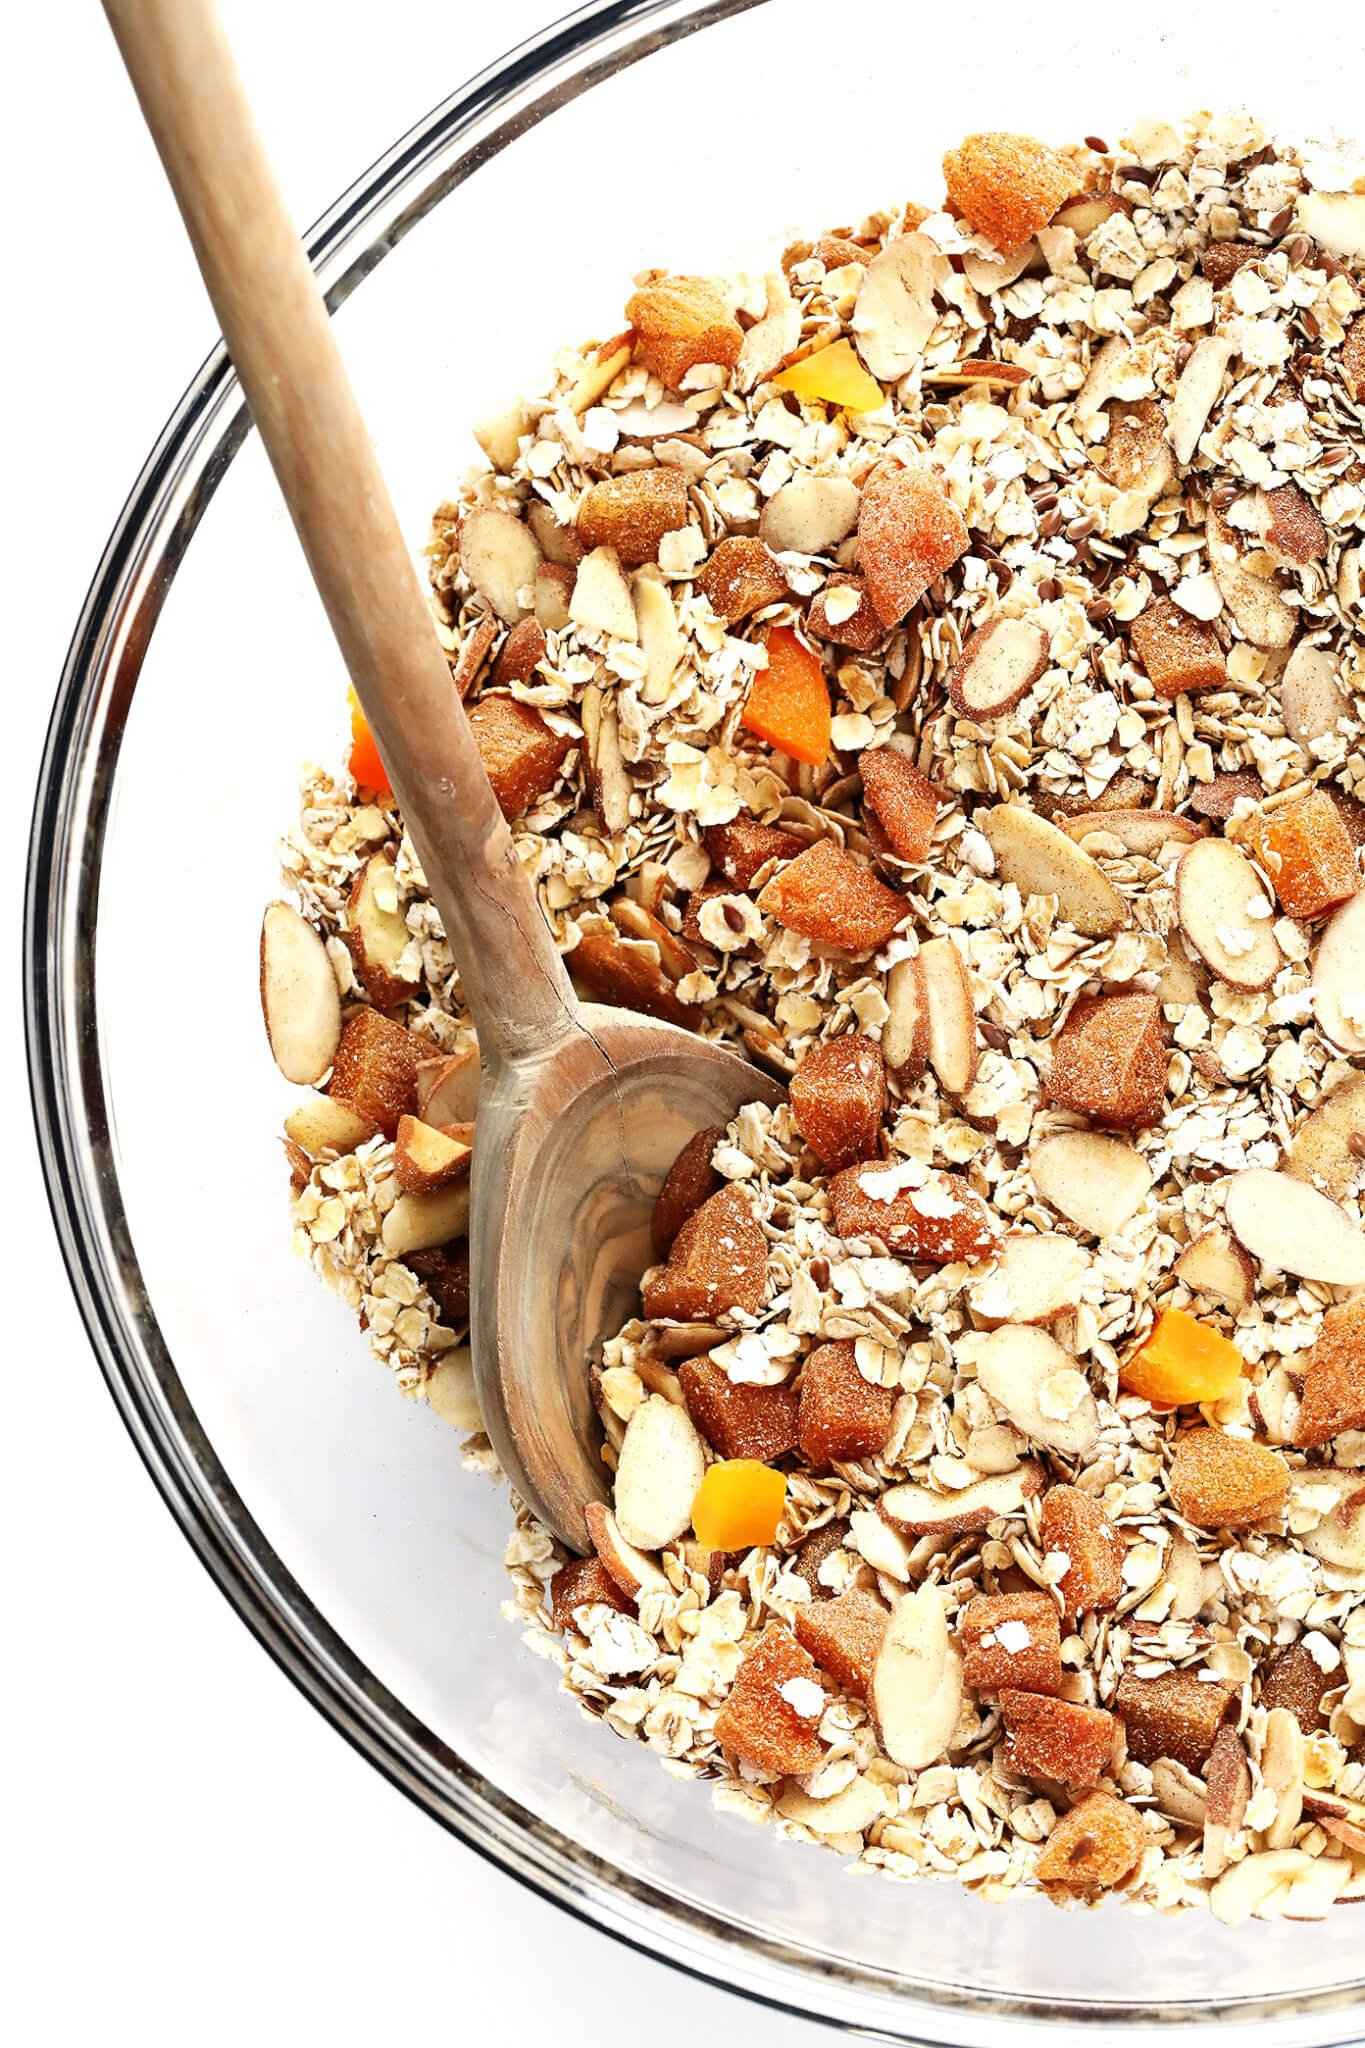 This delicious 5-Minute Instant Oatmeal Mix is full of feel-good ingredients, it's easy to make, and makes the perfect flavorful breakfast you can feel good about! This recipe uses dried apricots (or any fruit), almonds (or any nuts), oats, cinnamon, and flaxseeds. So simple! | gimmesomeoven.com